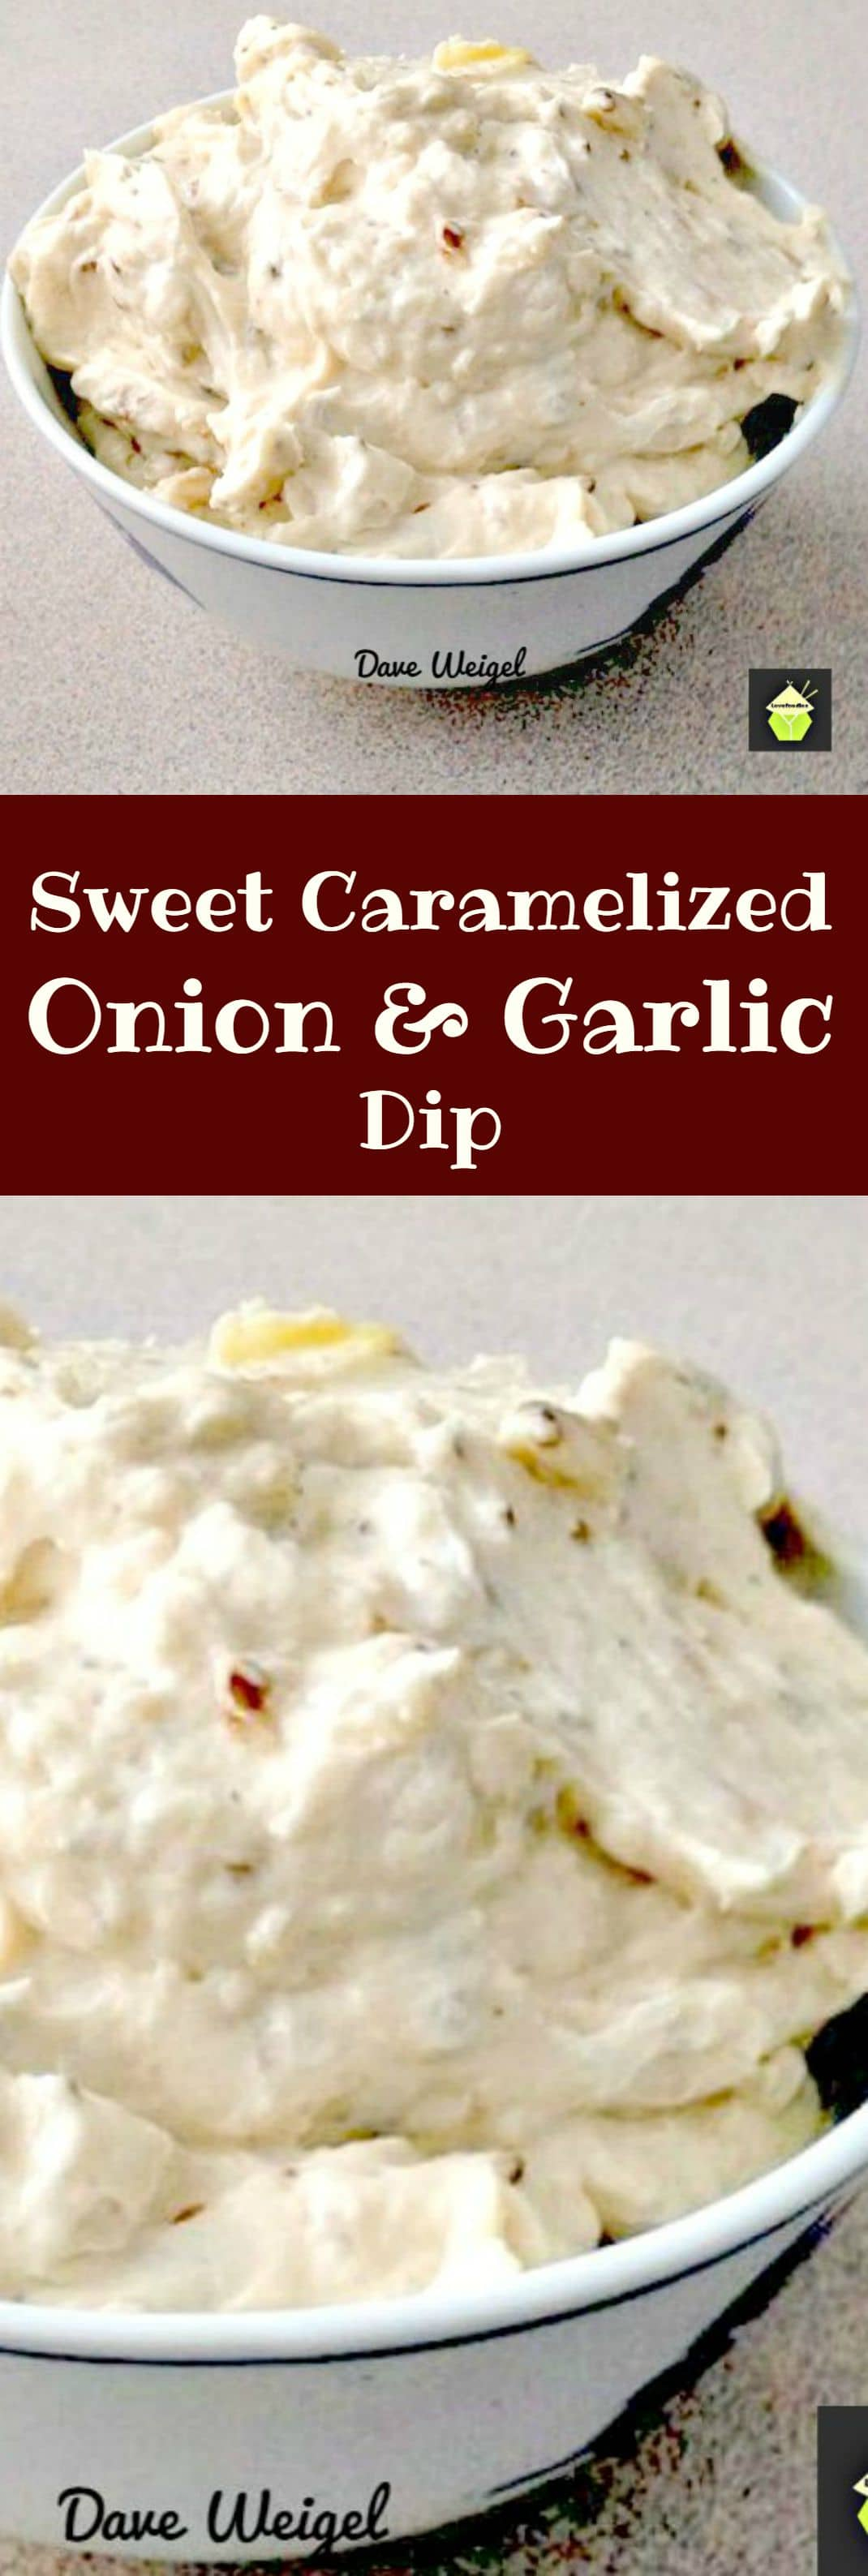 Sweet Caramelized Onion and Garlic Dip is a quick and easy recipe to make, full of great flavor and perfect for parties, buffets and family gatherings.